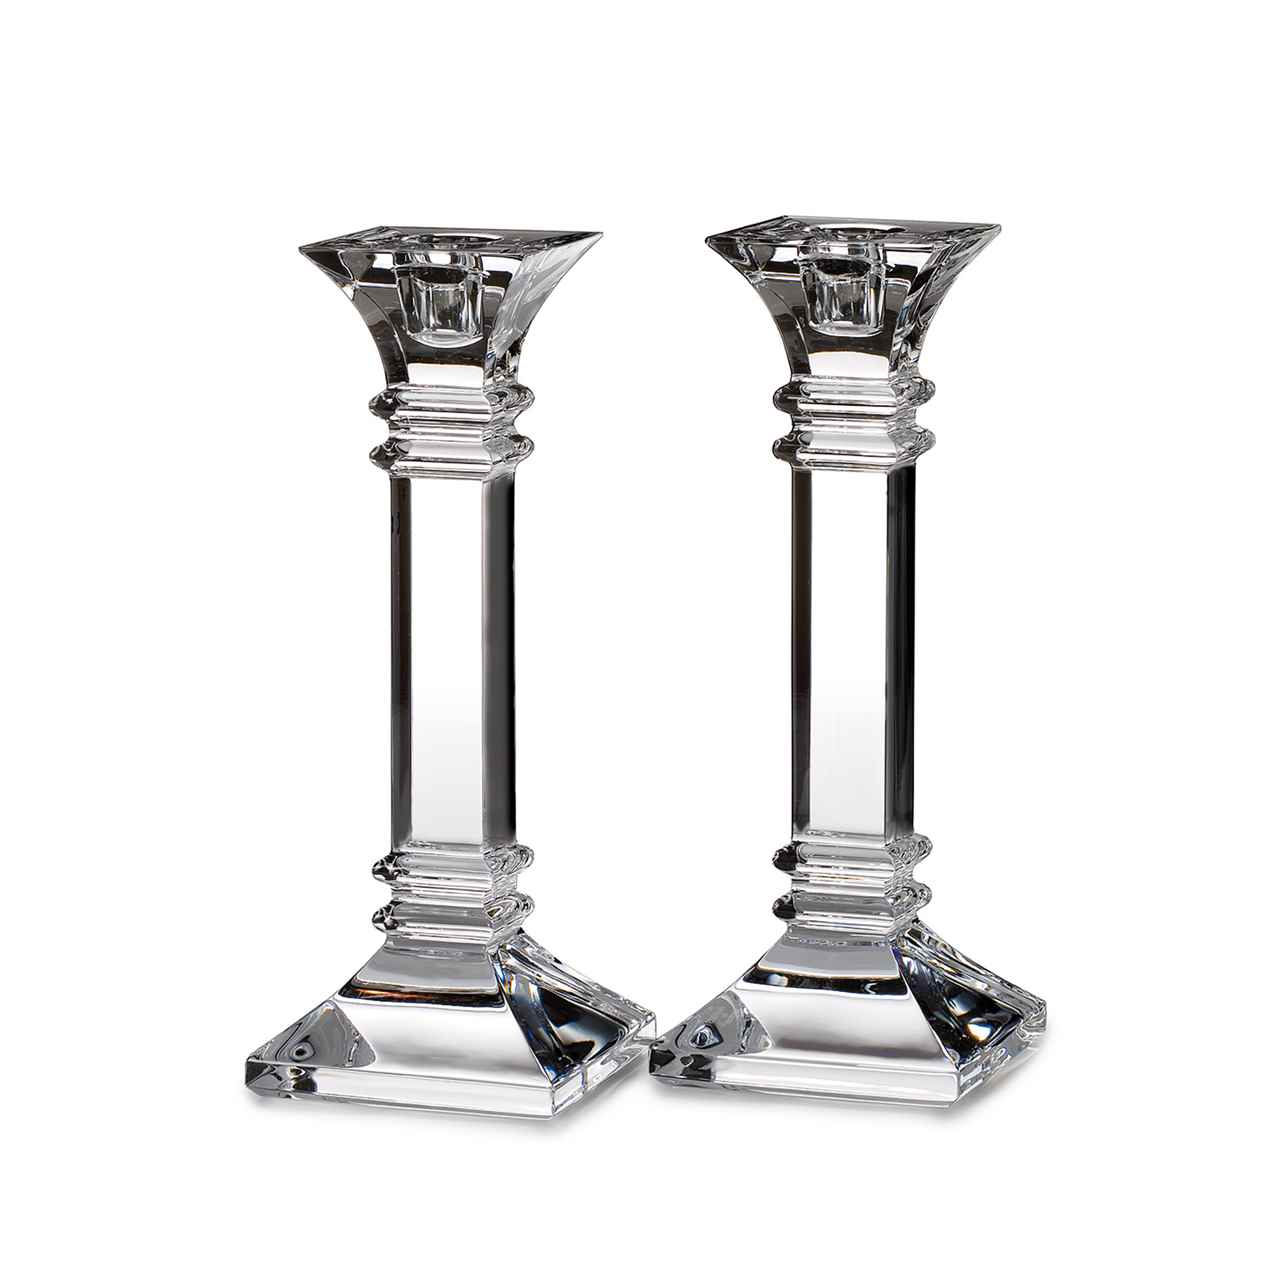 Marquis Treviso 20cm Candlestick, Set of 2